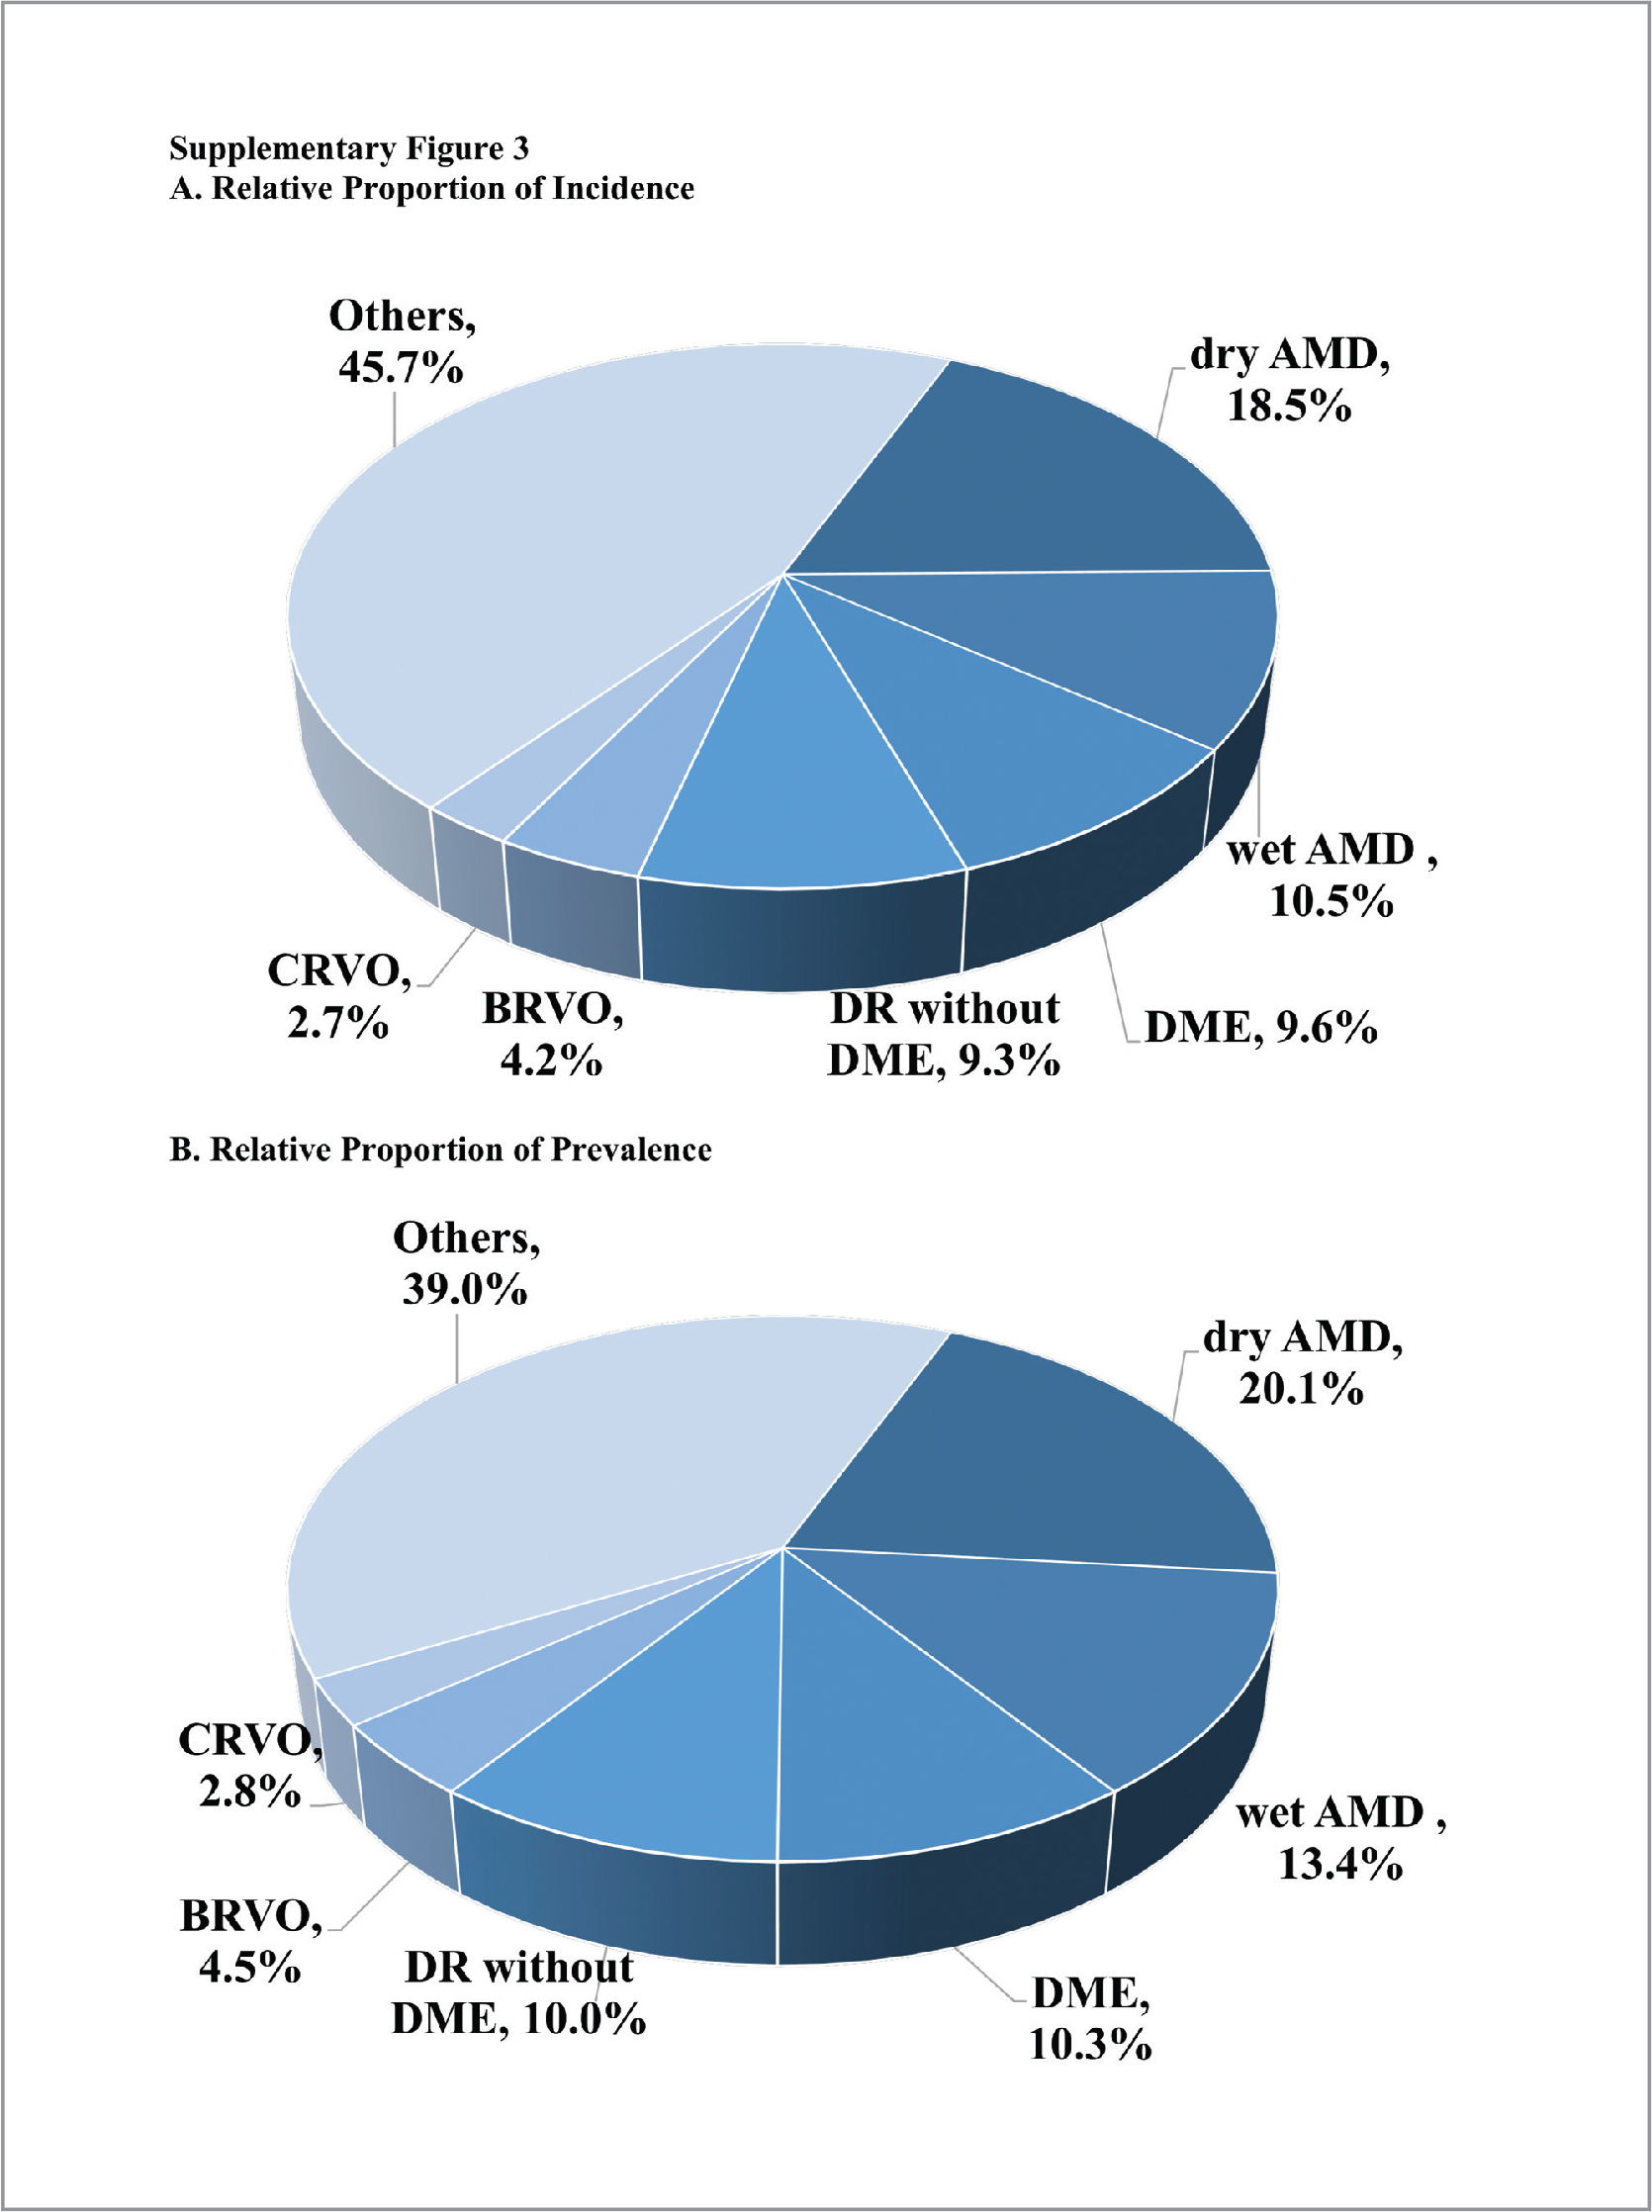 (A) Total incidence for each of the retinal diseases for the entire 6-year study period as a relative proportion of the total number of new patients examined by a retina specialist during the study period. (B) Total prevalence for each of the retinal diseases for the entire 6-year study period as a relative proportion of the total number of patients examined by a retina specialist during the study period.